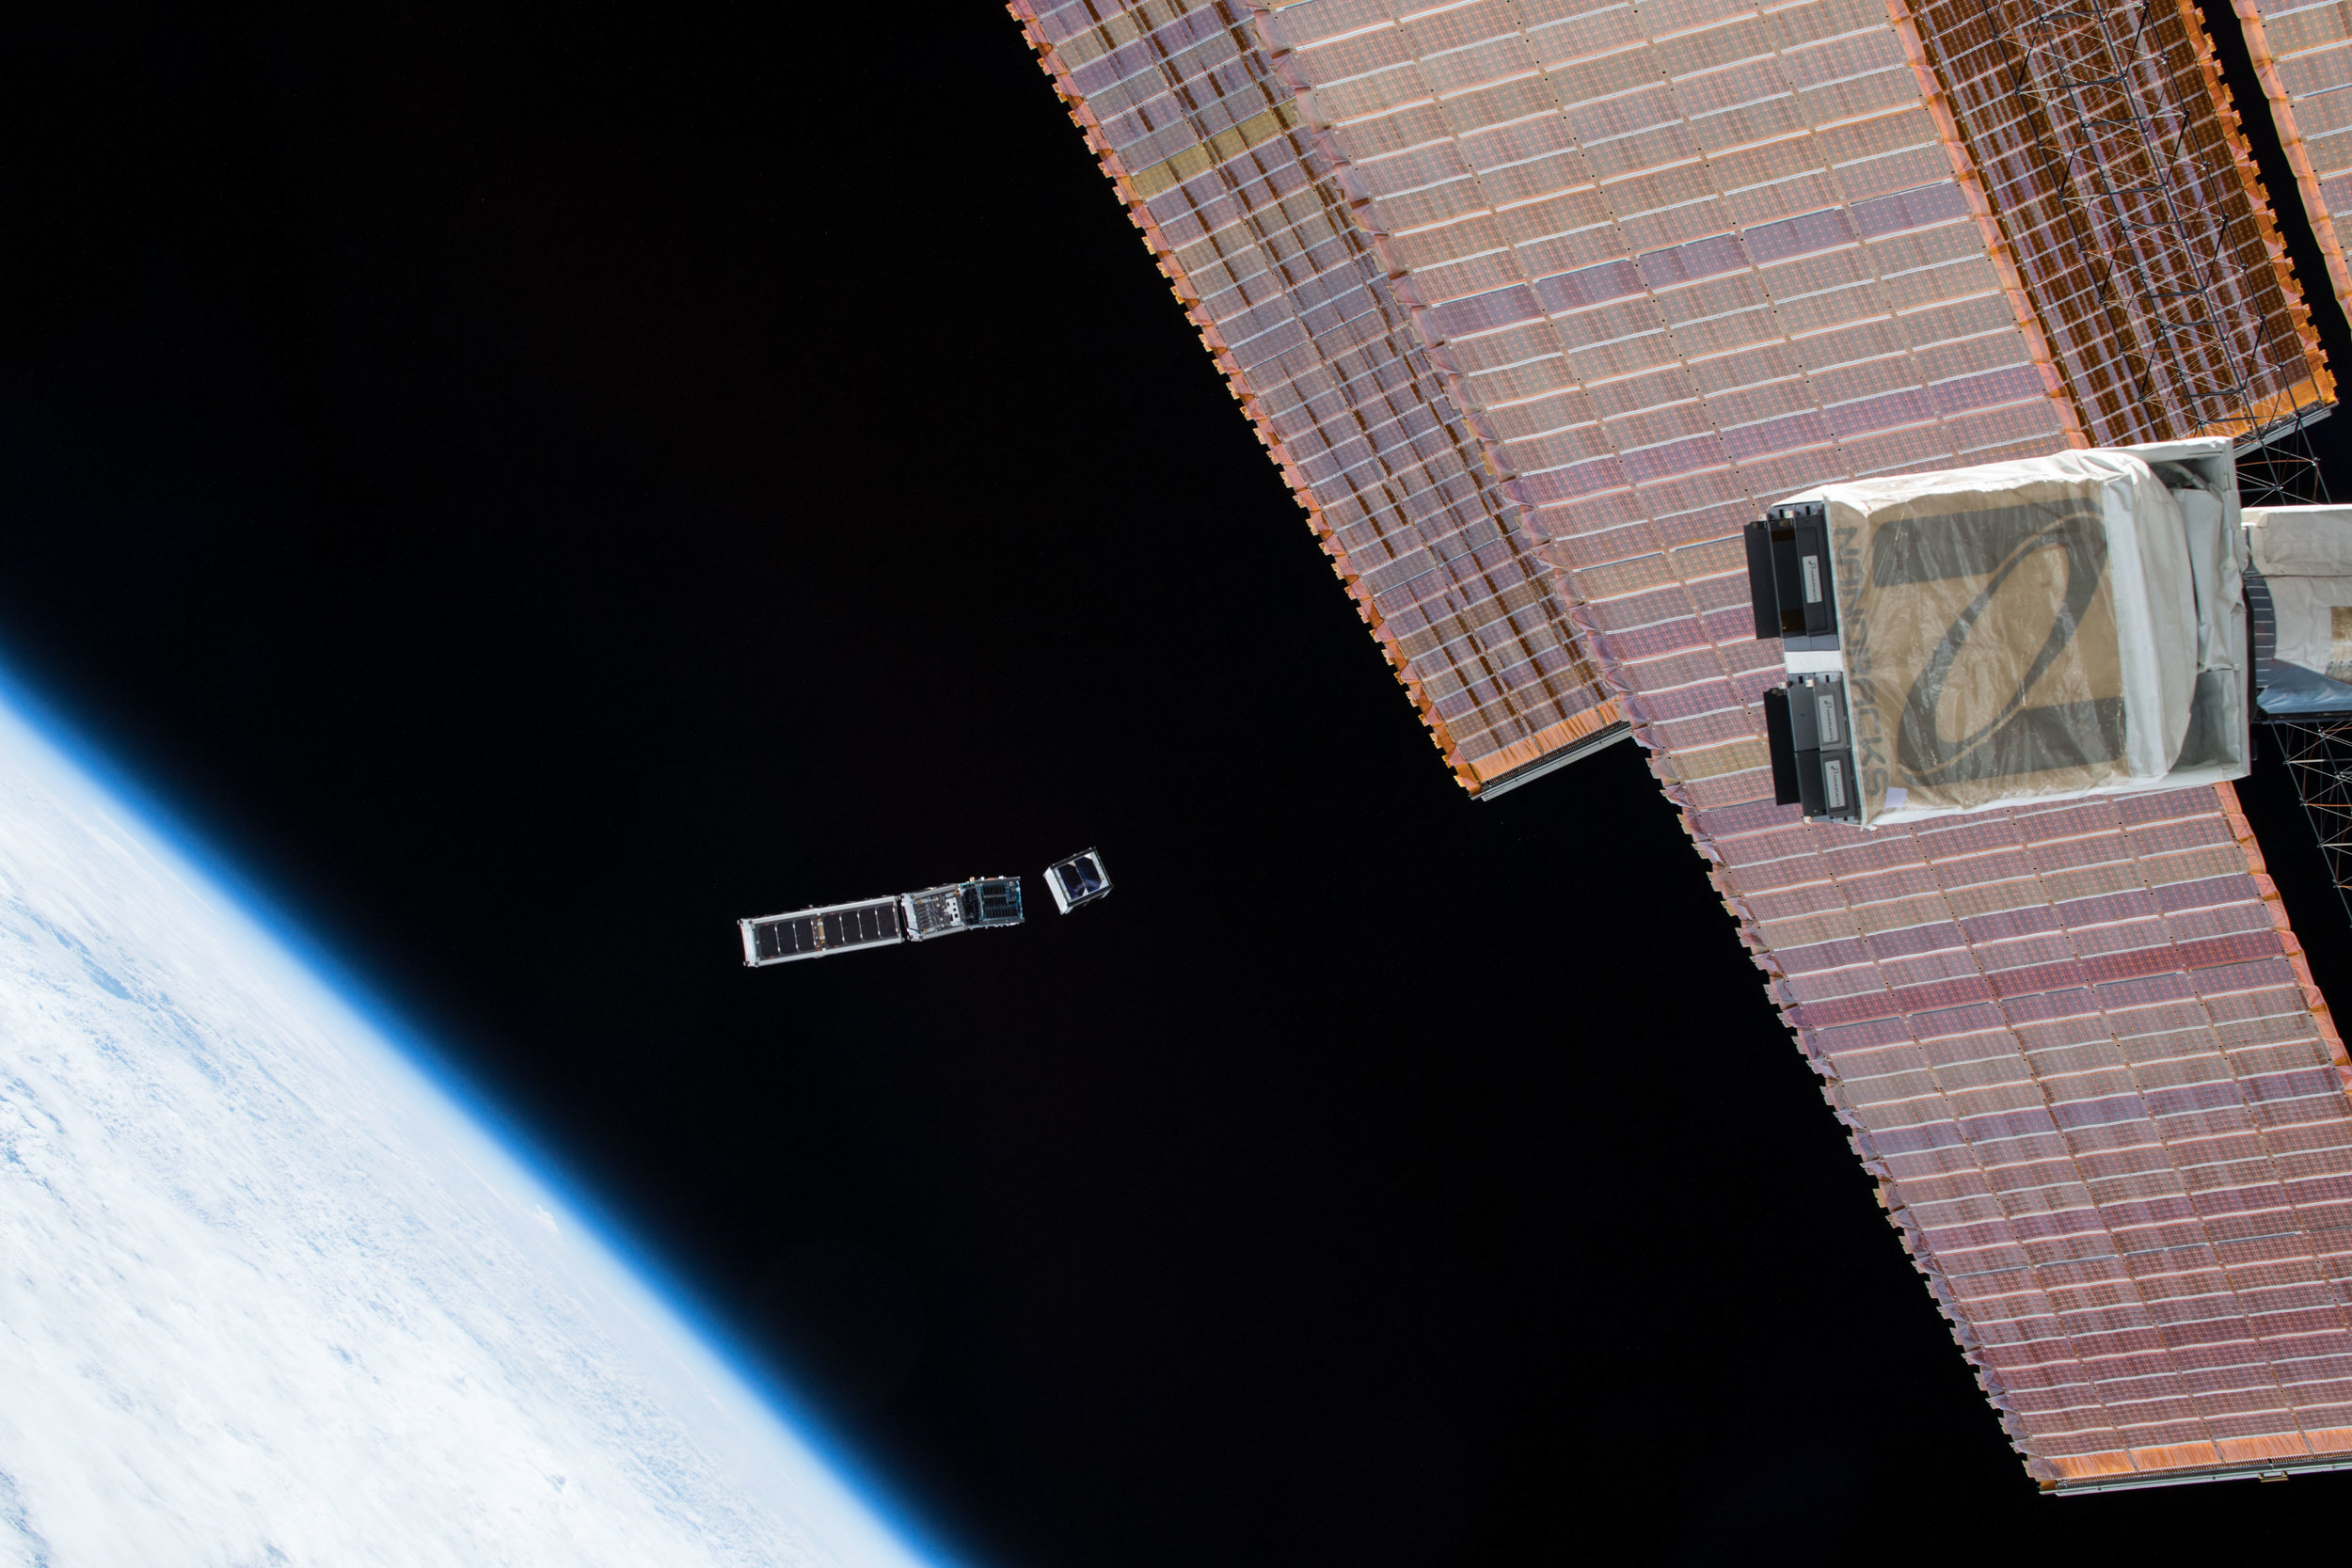 EQUiSat deploying from the ISS. It is the second CubeSat from the right